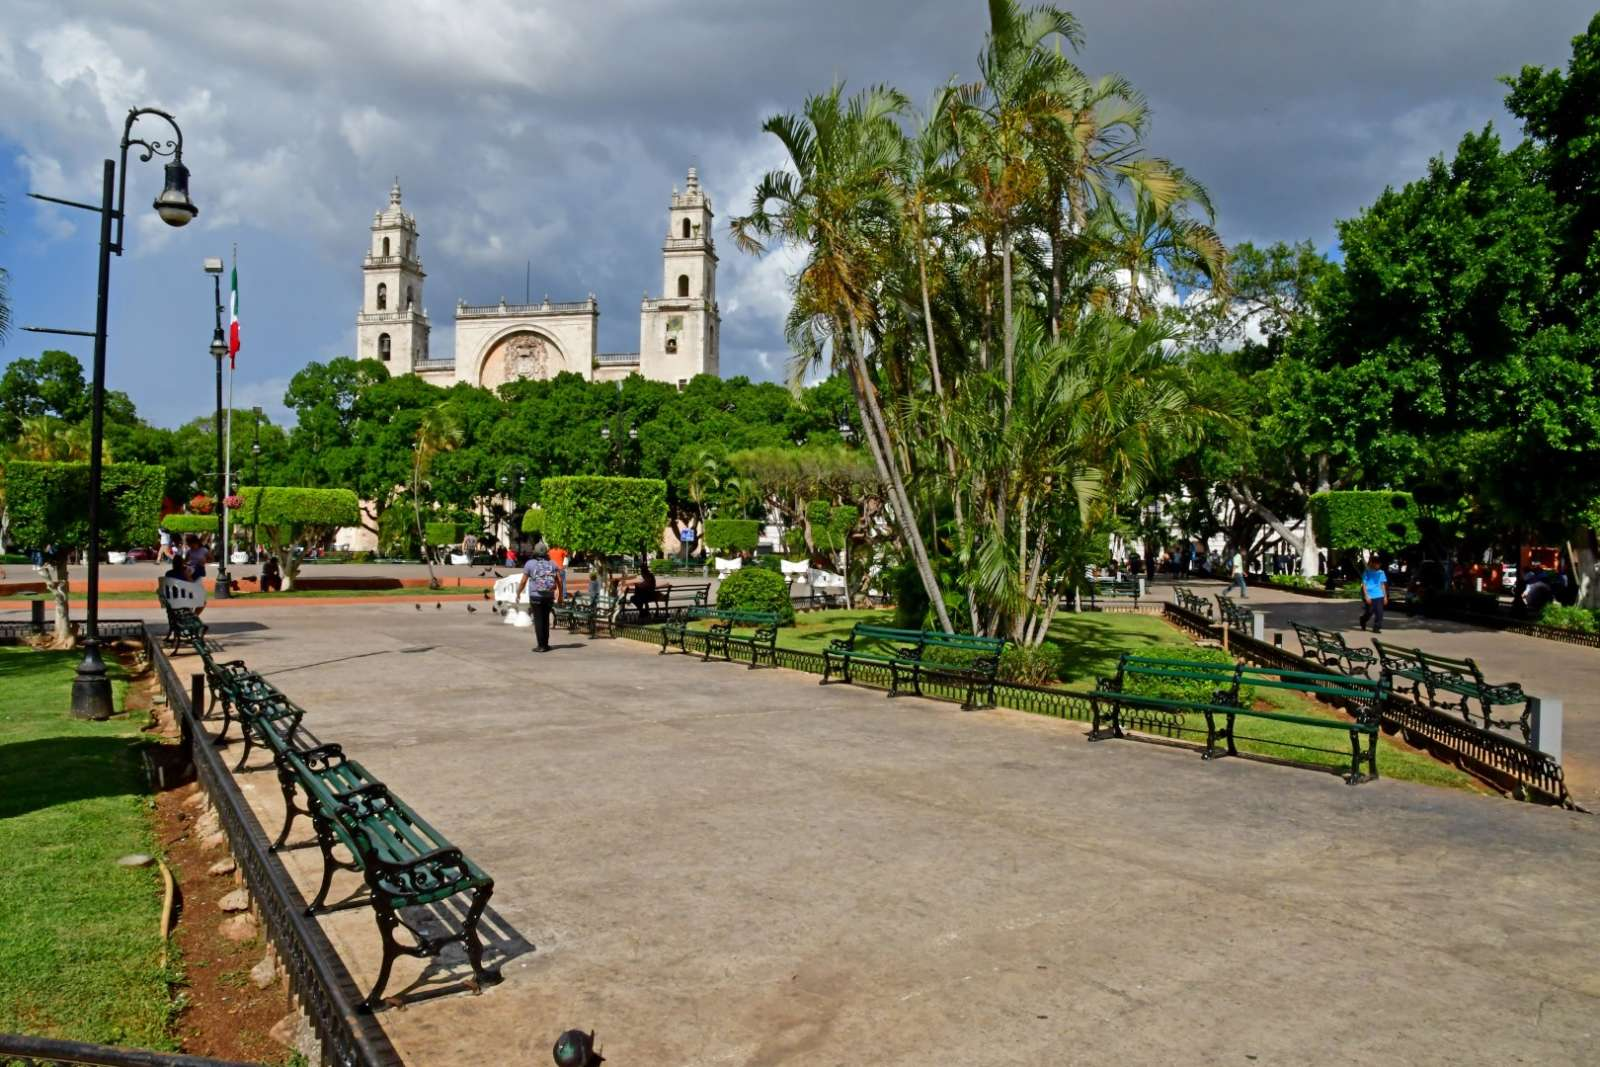 Park and cathedral in Merida, Yucatan